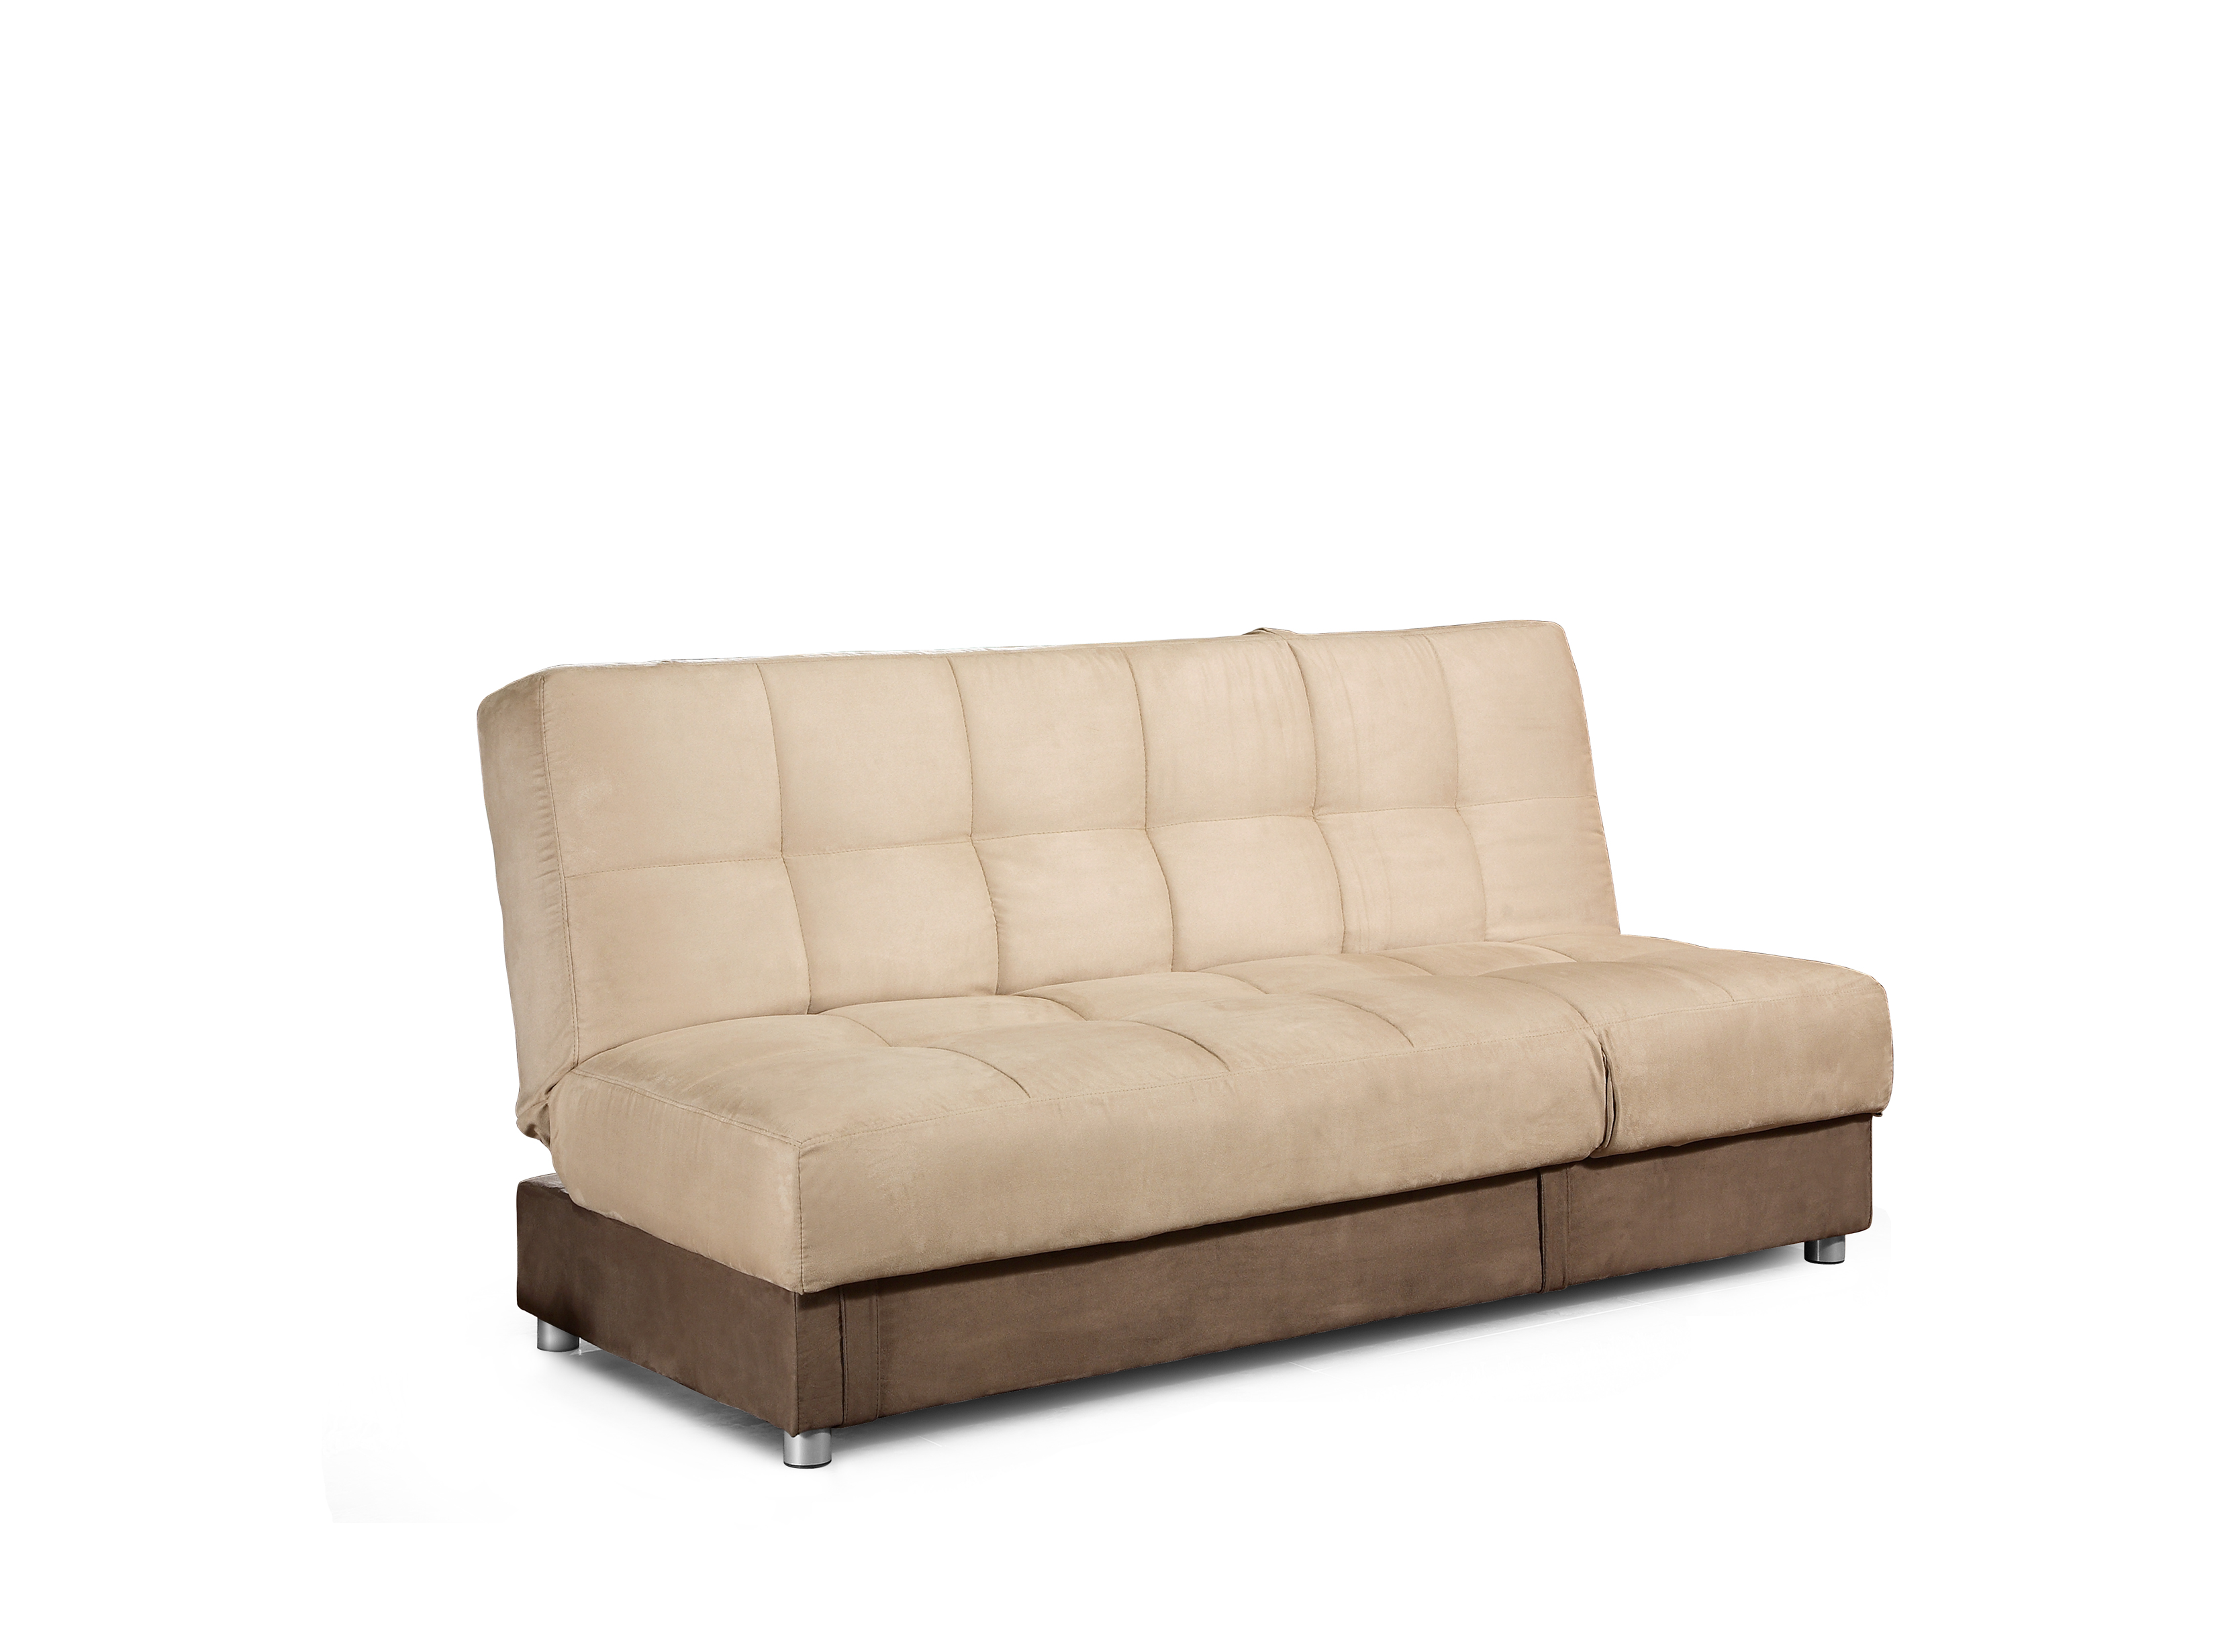 Sof cama cool simple sof cama plazas gris with sofa cama for Precio sofa cama segunda mano